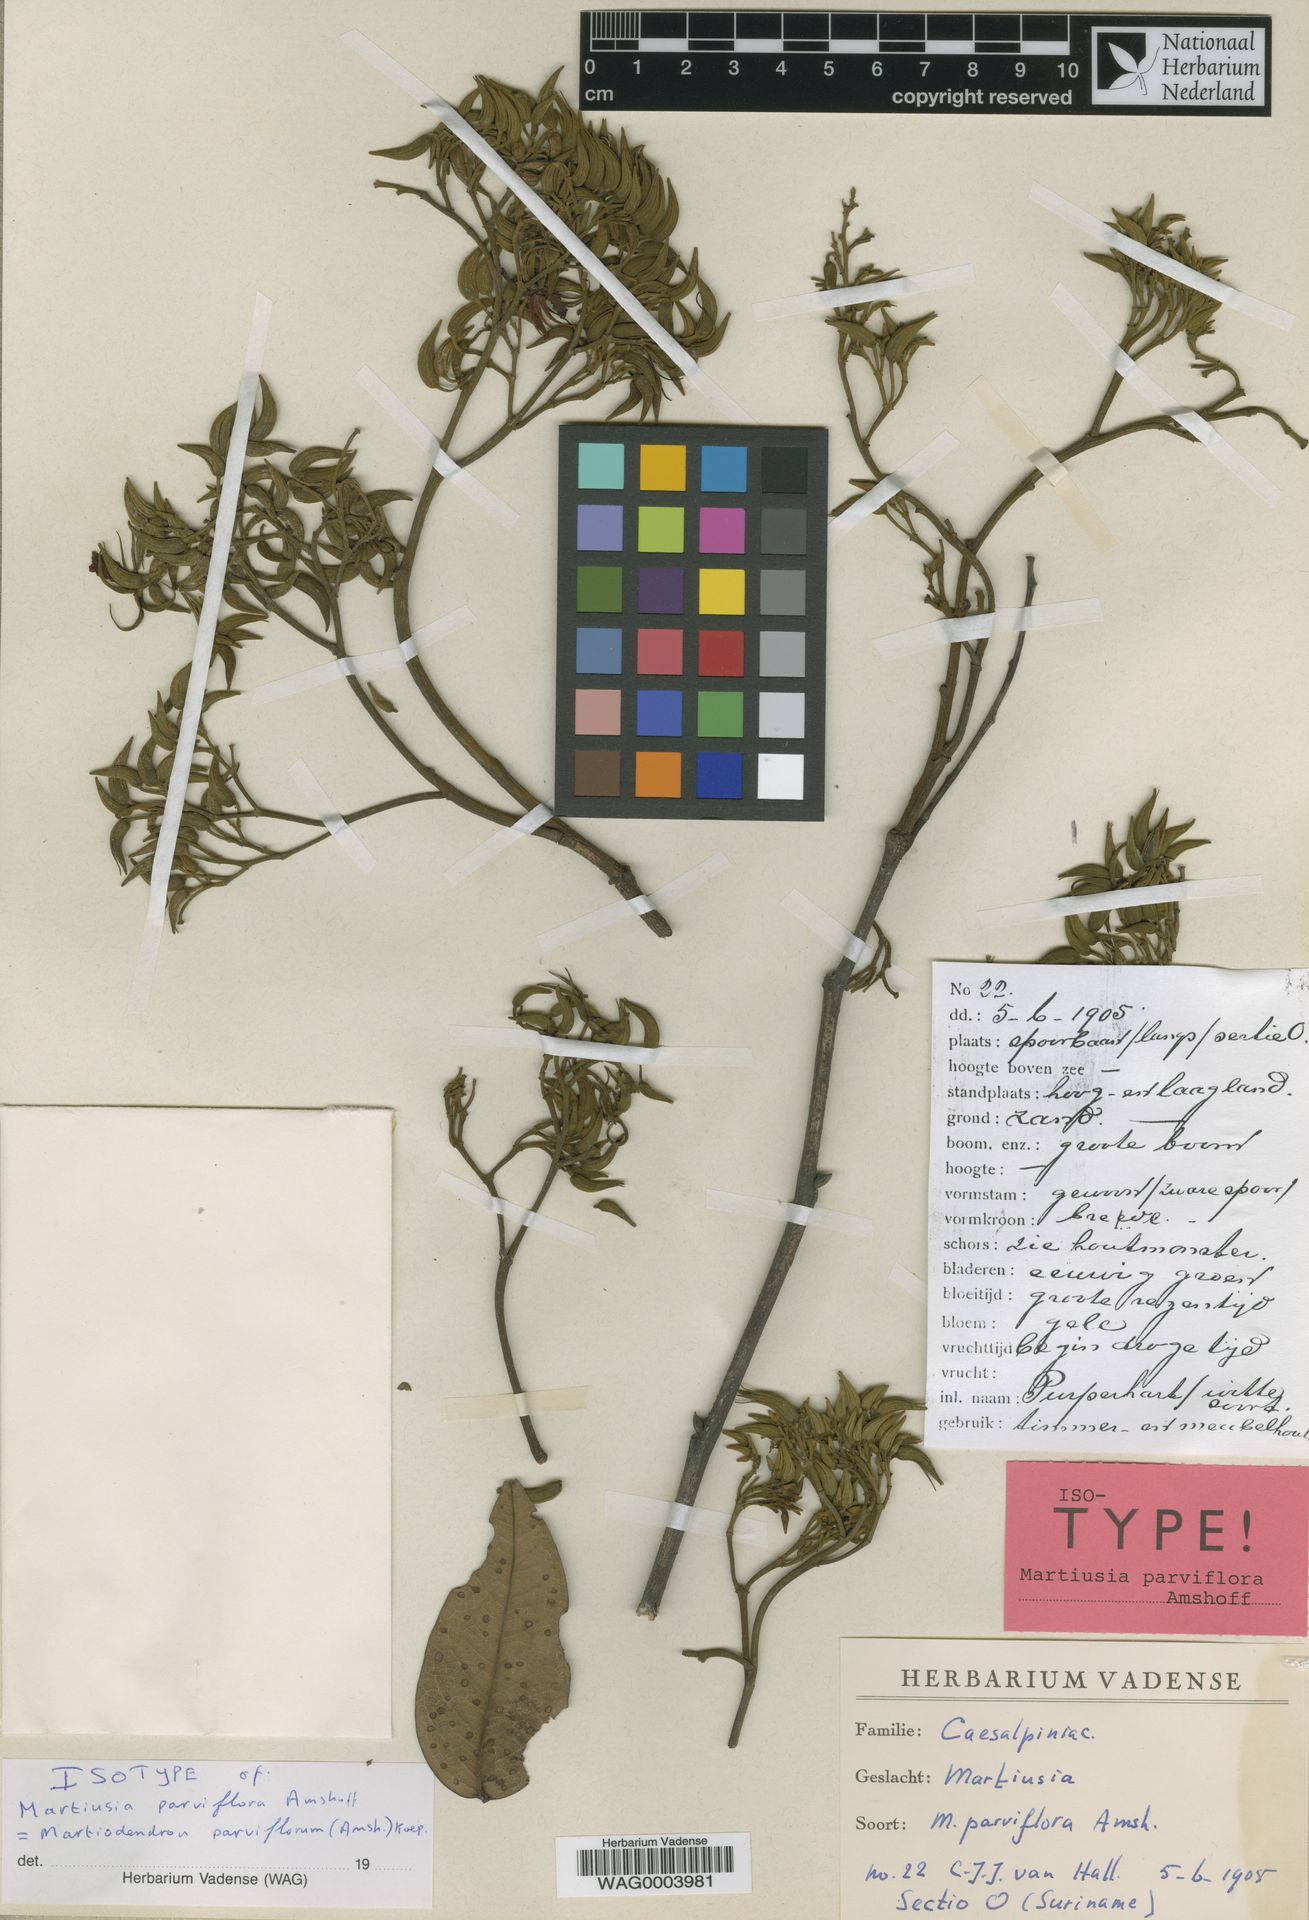 WAG0003981 | Martiodendron parviflorum (Amshoff) R.C.Koeppen